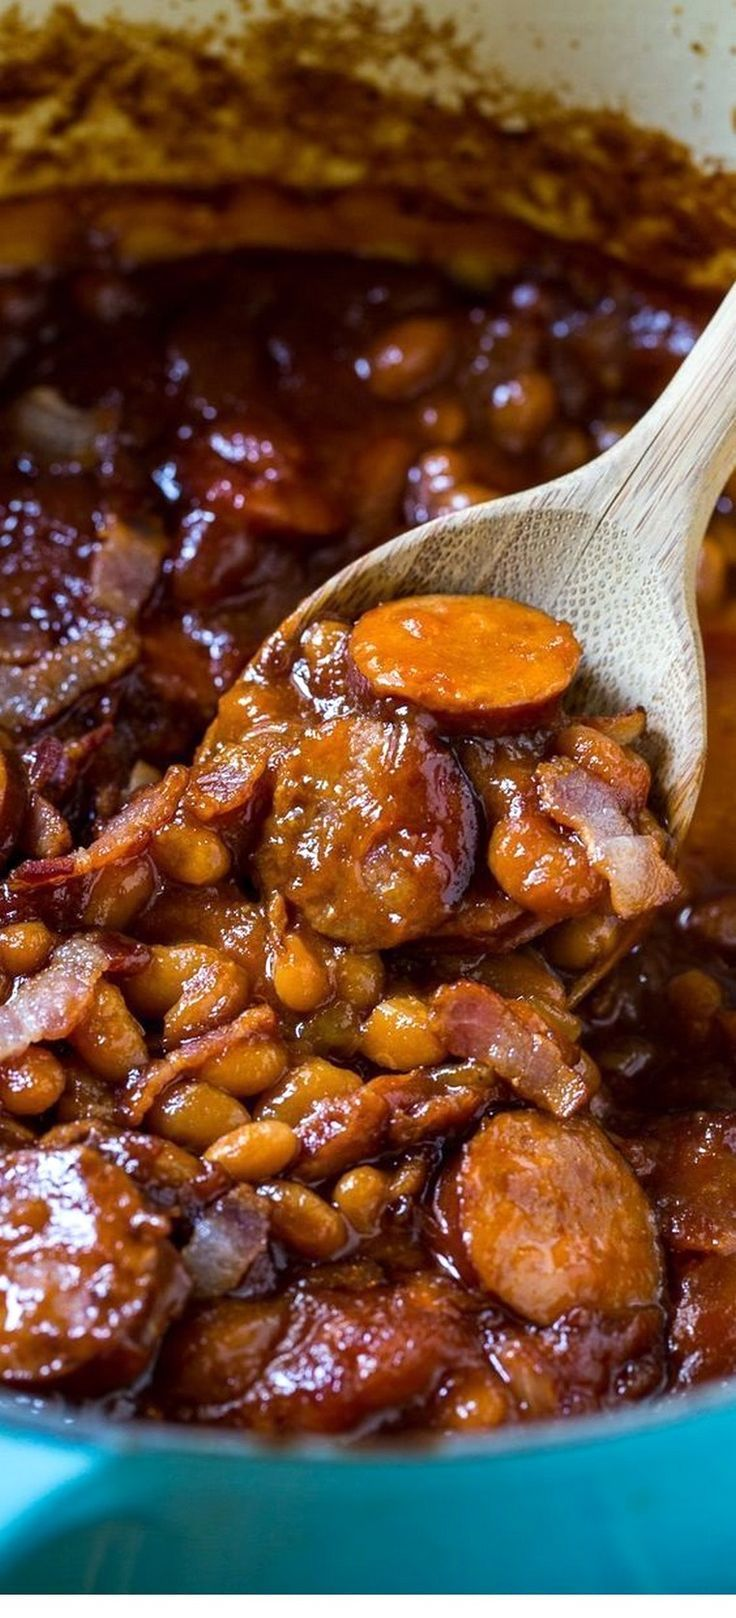 Baked Beans with Smoked Sausage - -